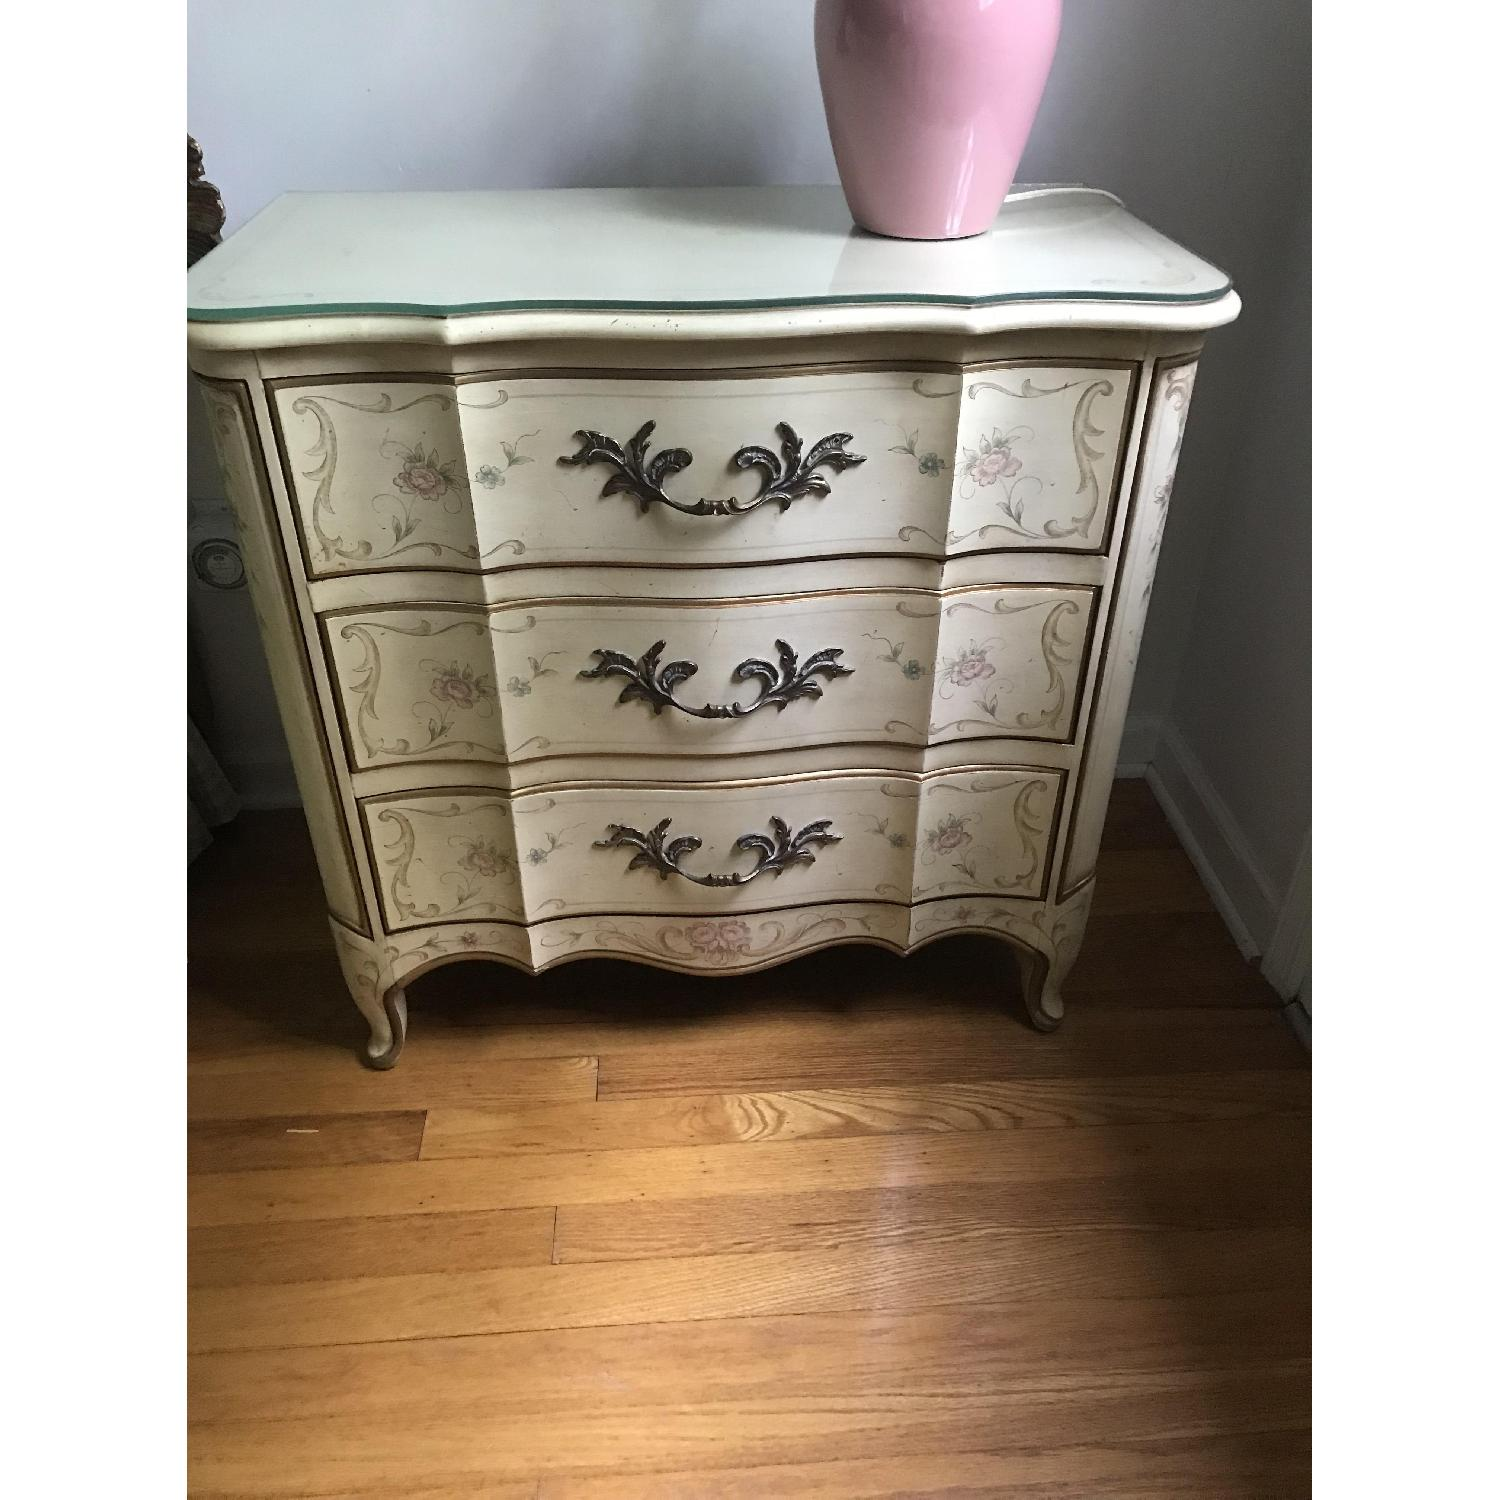 Karges Mid Century French Provincial Nightstands - image-1